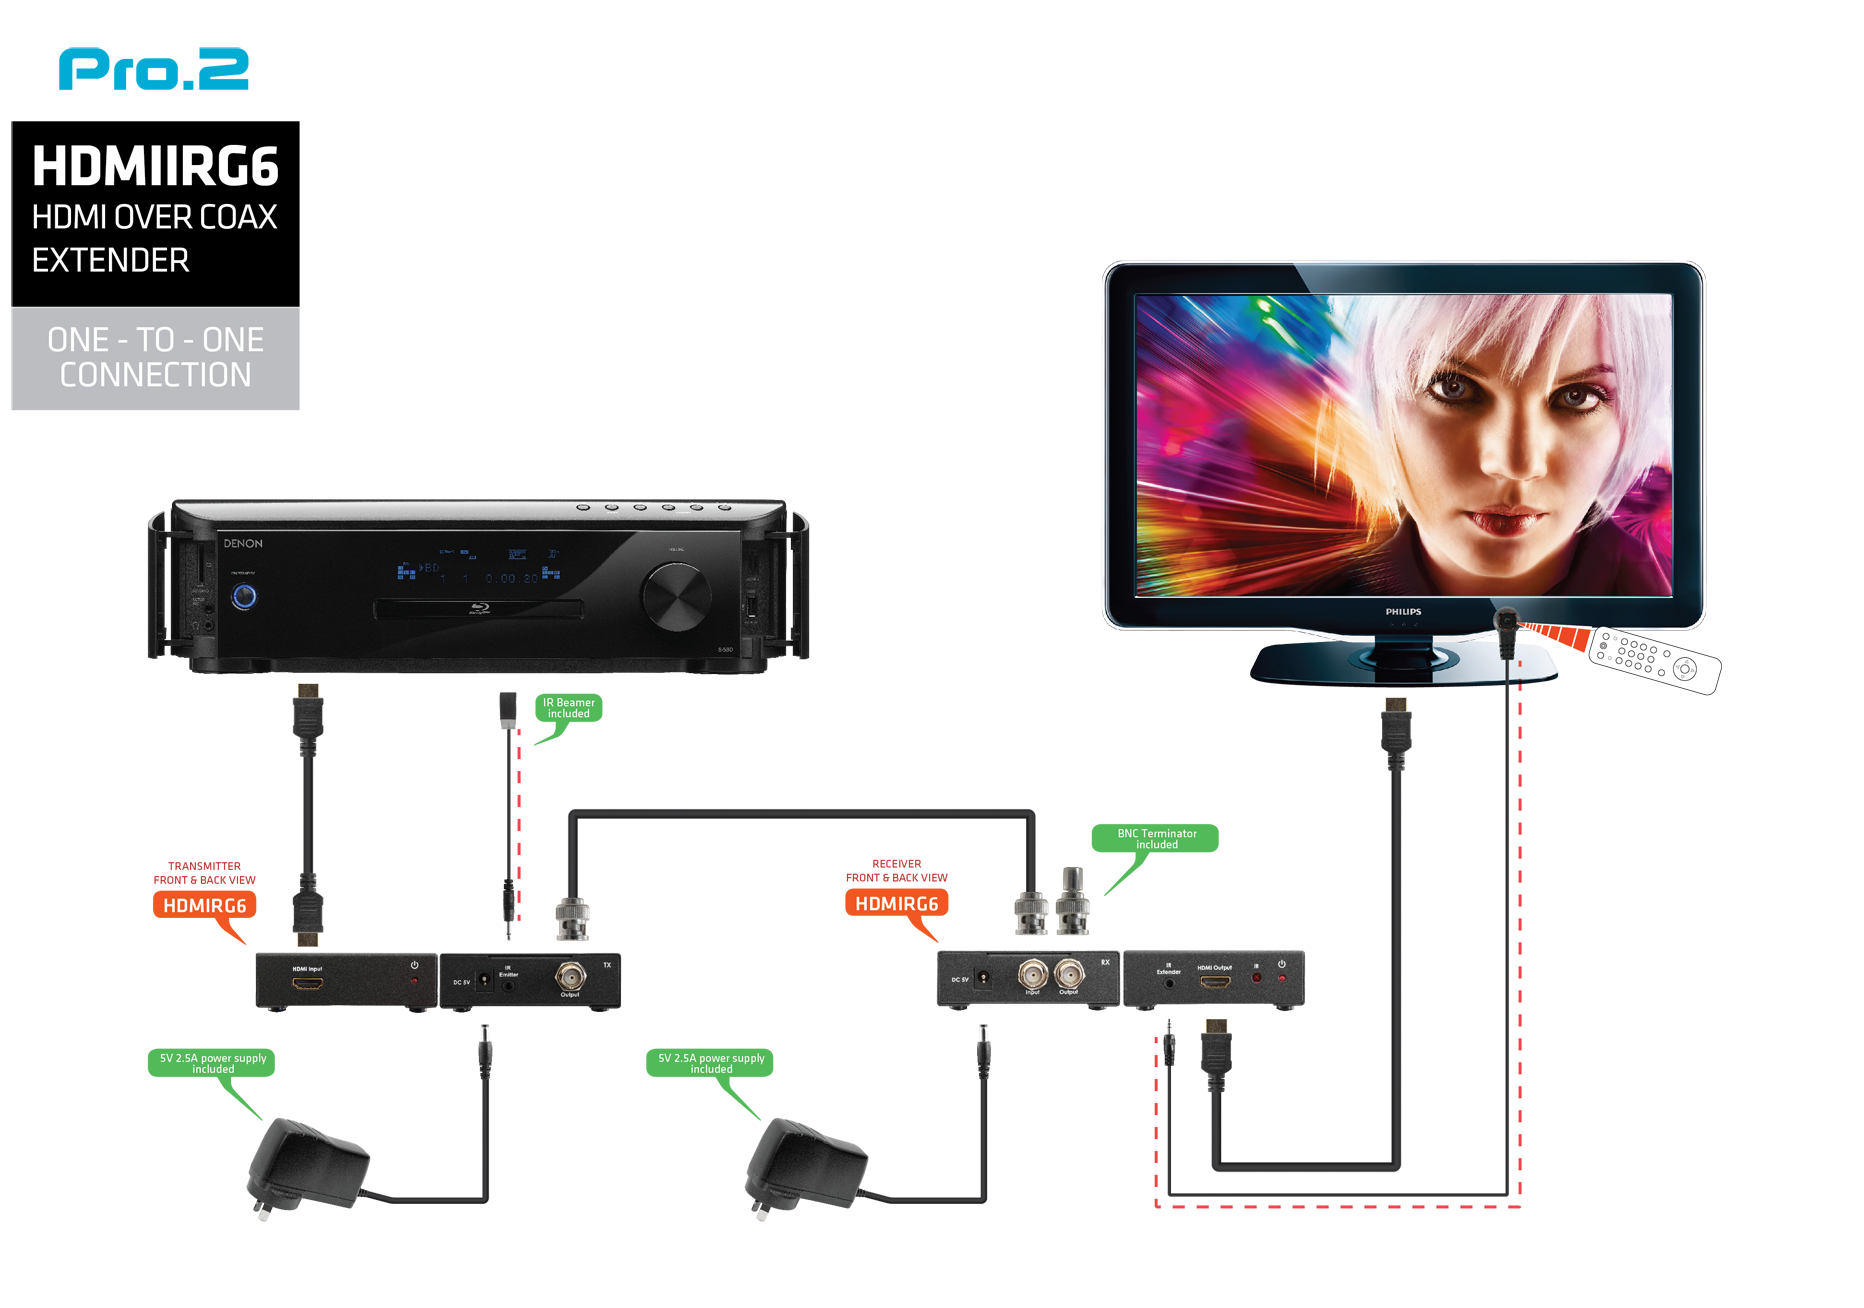 Hdmirg6 Hdmi Over Single Coaxial With Ir Pro2 Connections Diagrams Connection